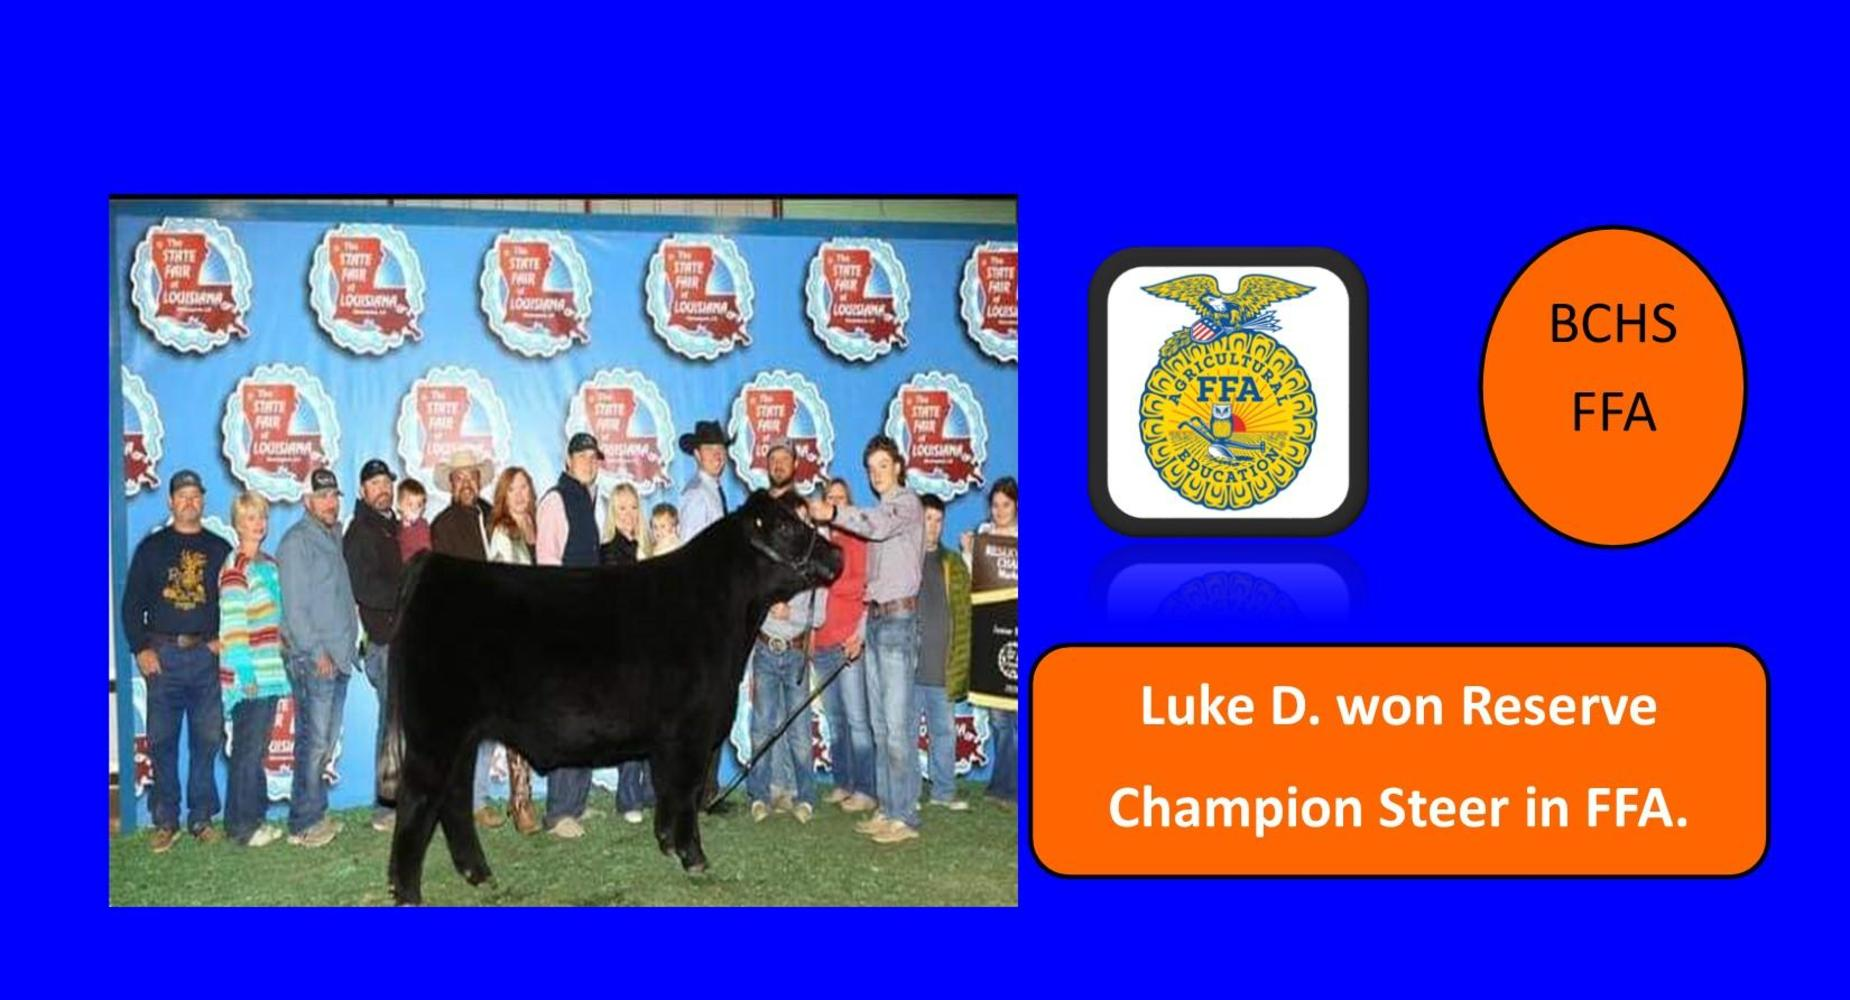 BCHS-FFA - Luke D. won Reserve Champion Steer in FFA.